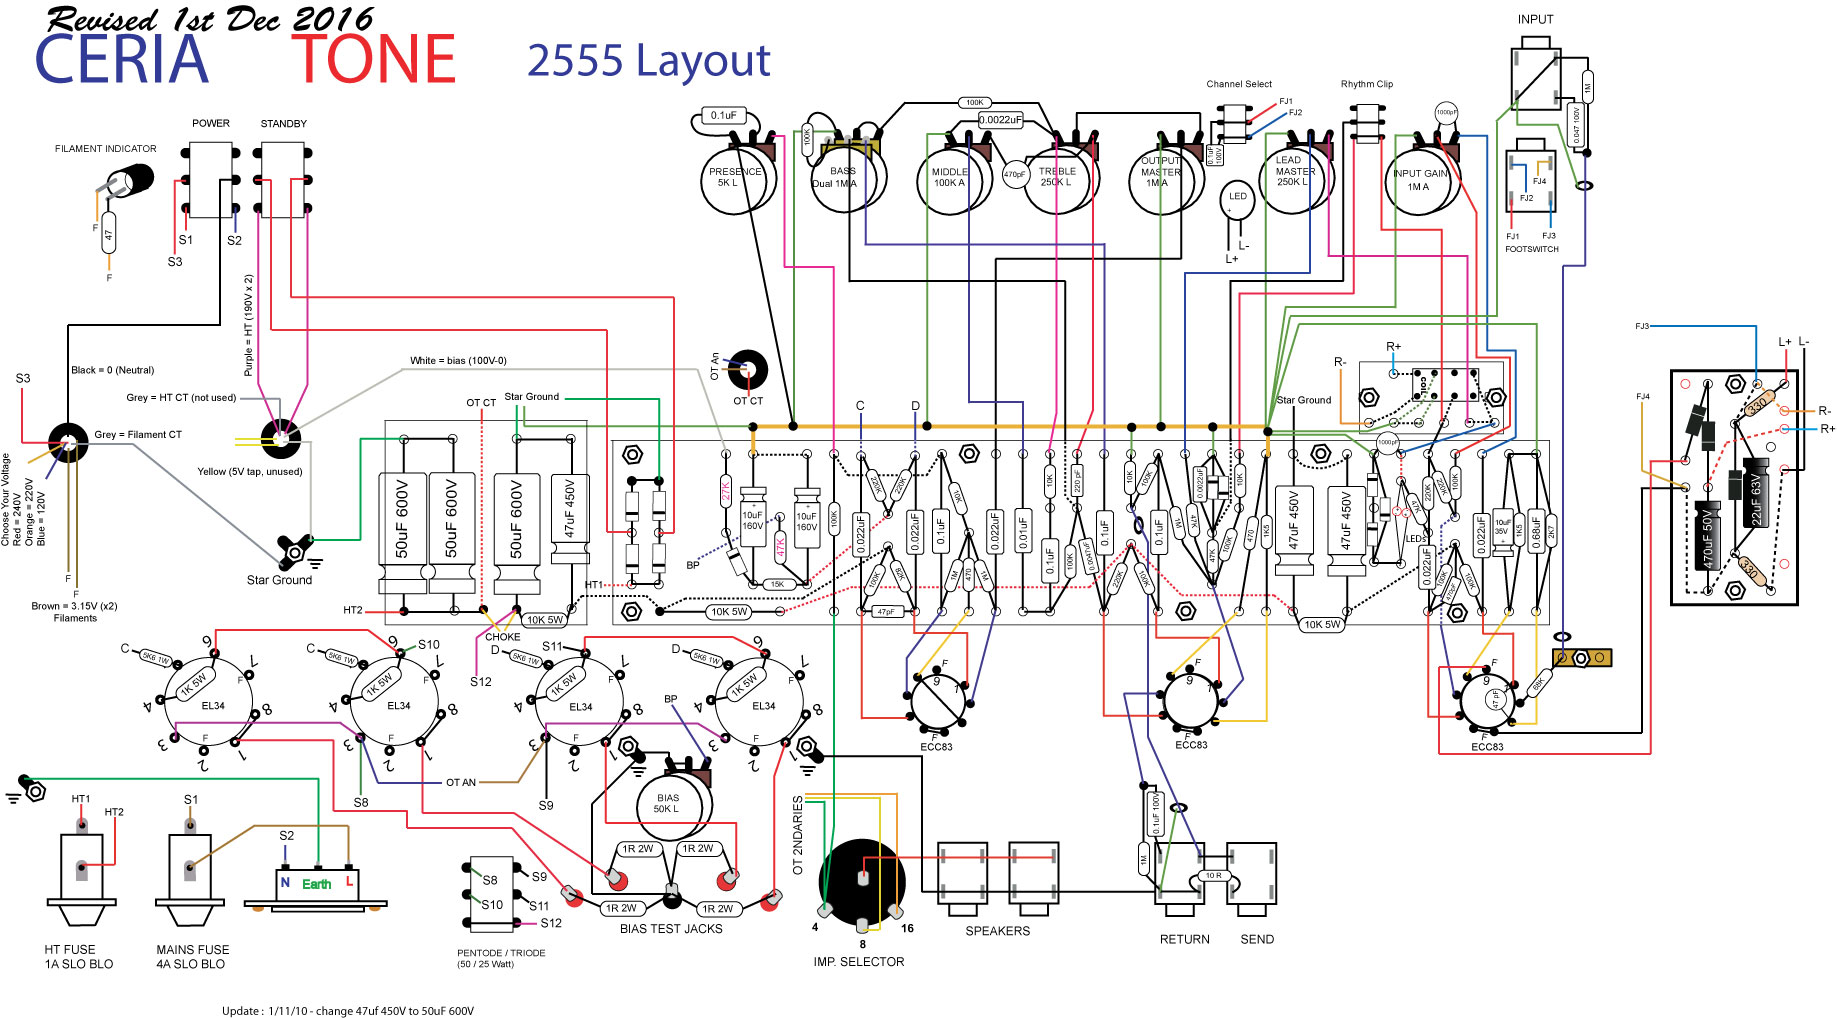 Marshall jubilee schematic circuit diagram trusted wiring diagram index of ceriatone wp content uploads 2018 07 metal detector schematic circuit diagram marshall jubilee schematic circuit diagram swarovskicordoba Images